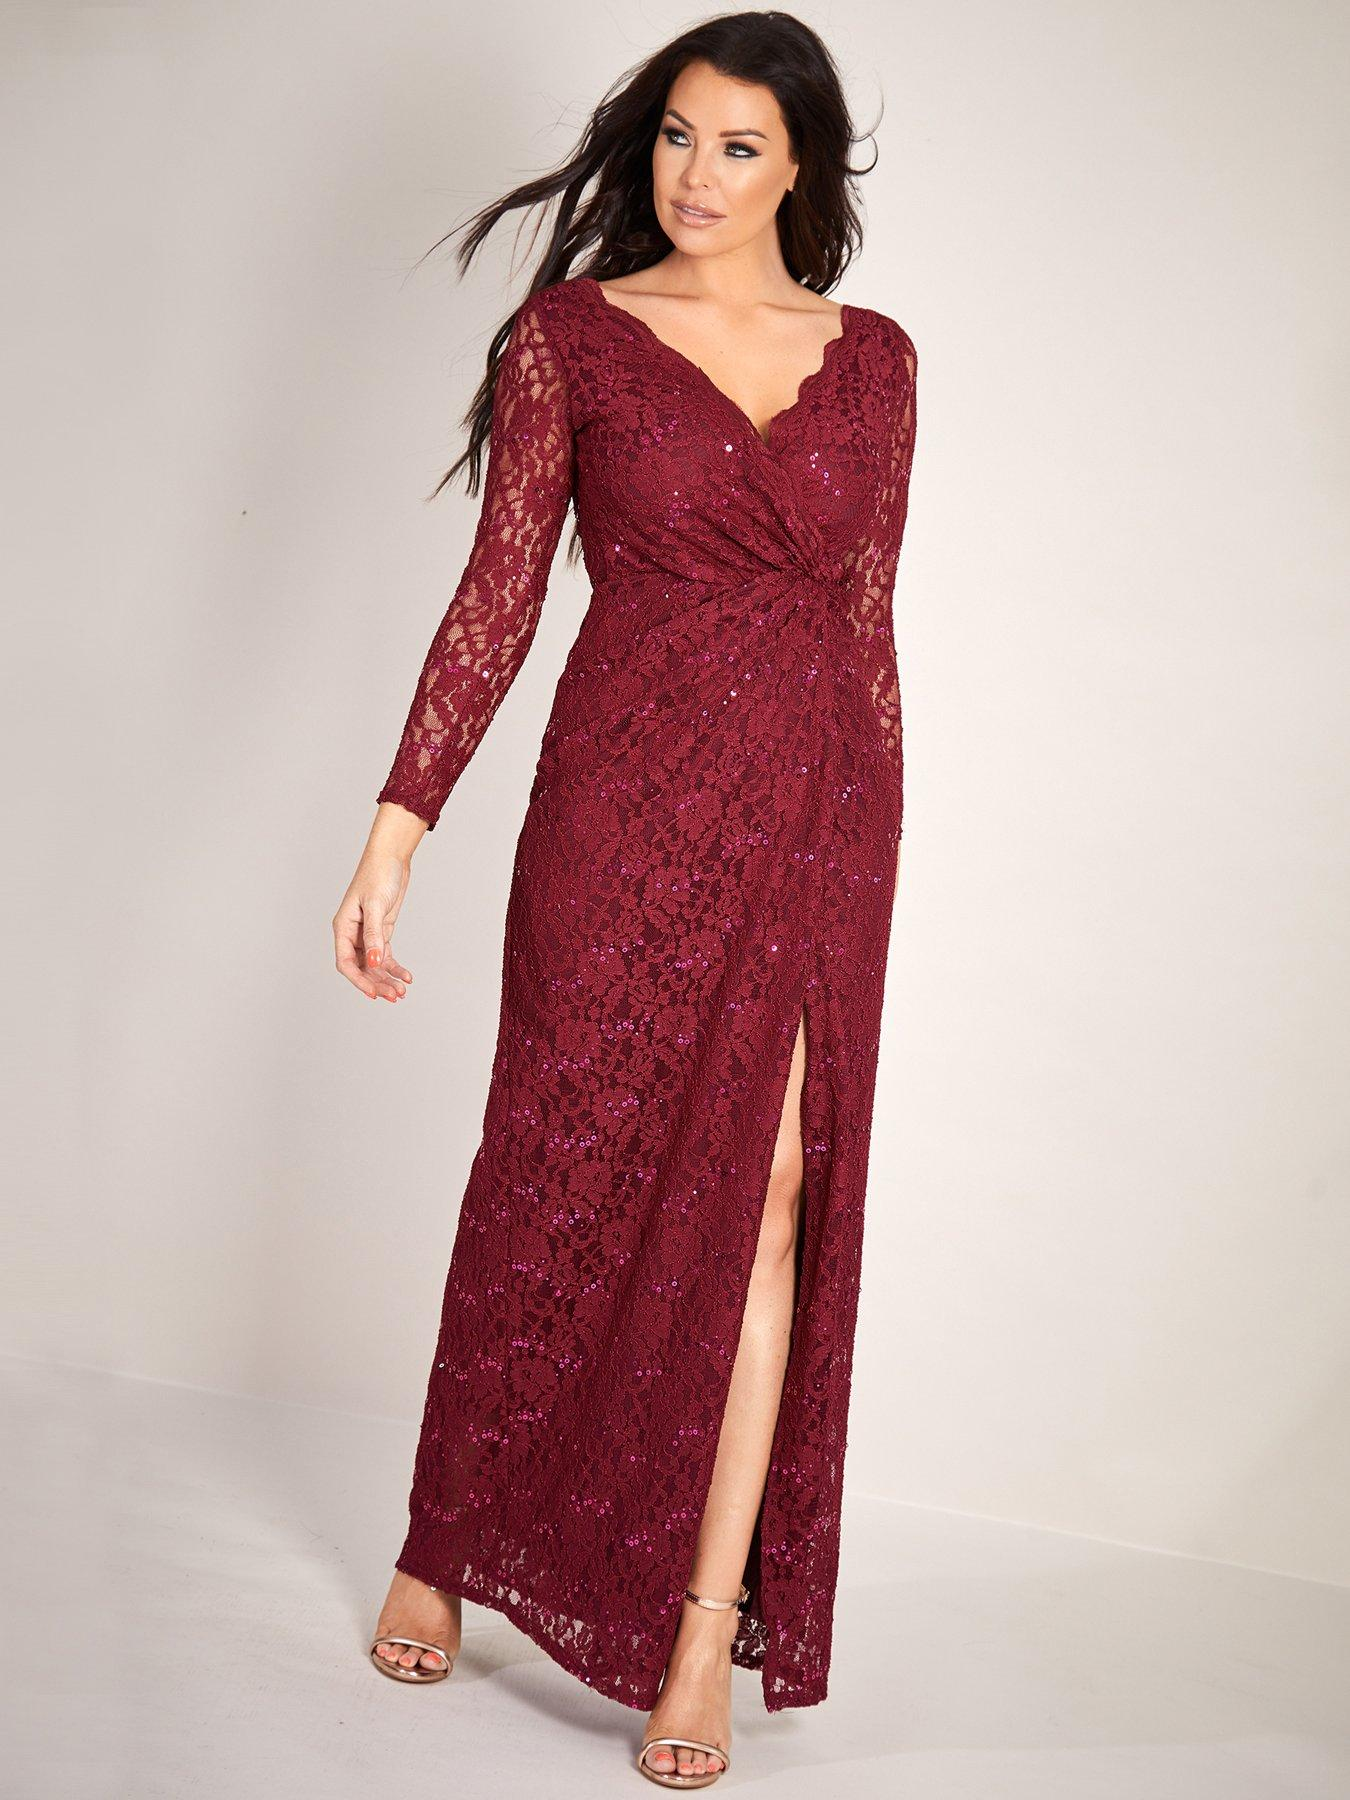 Berry Sequin Prom Dress